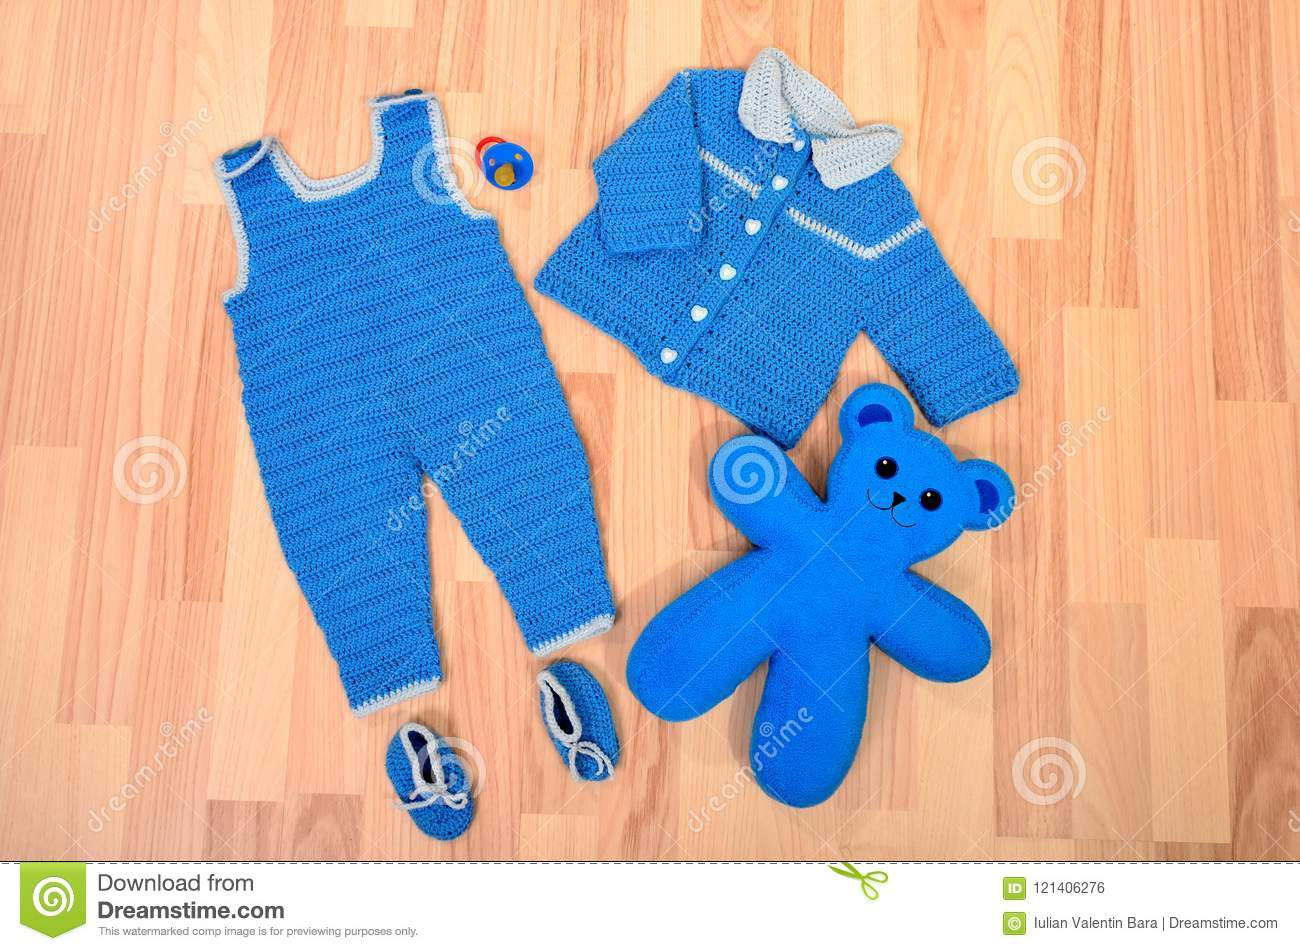 c7653f8f9 Baby Boy Blue Winter Clothes And Shoes Lying On The Floor. Stock ...